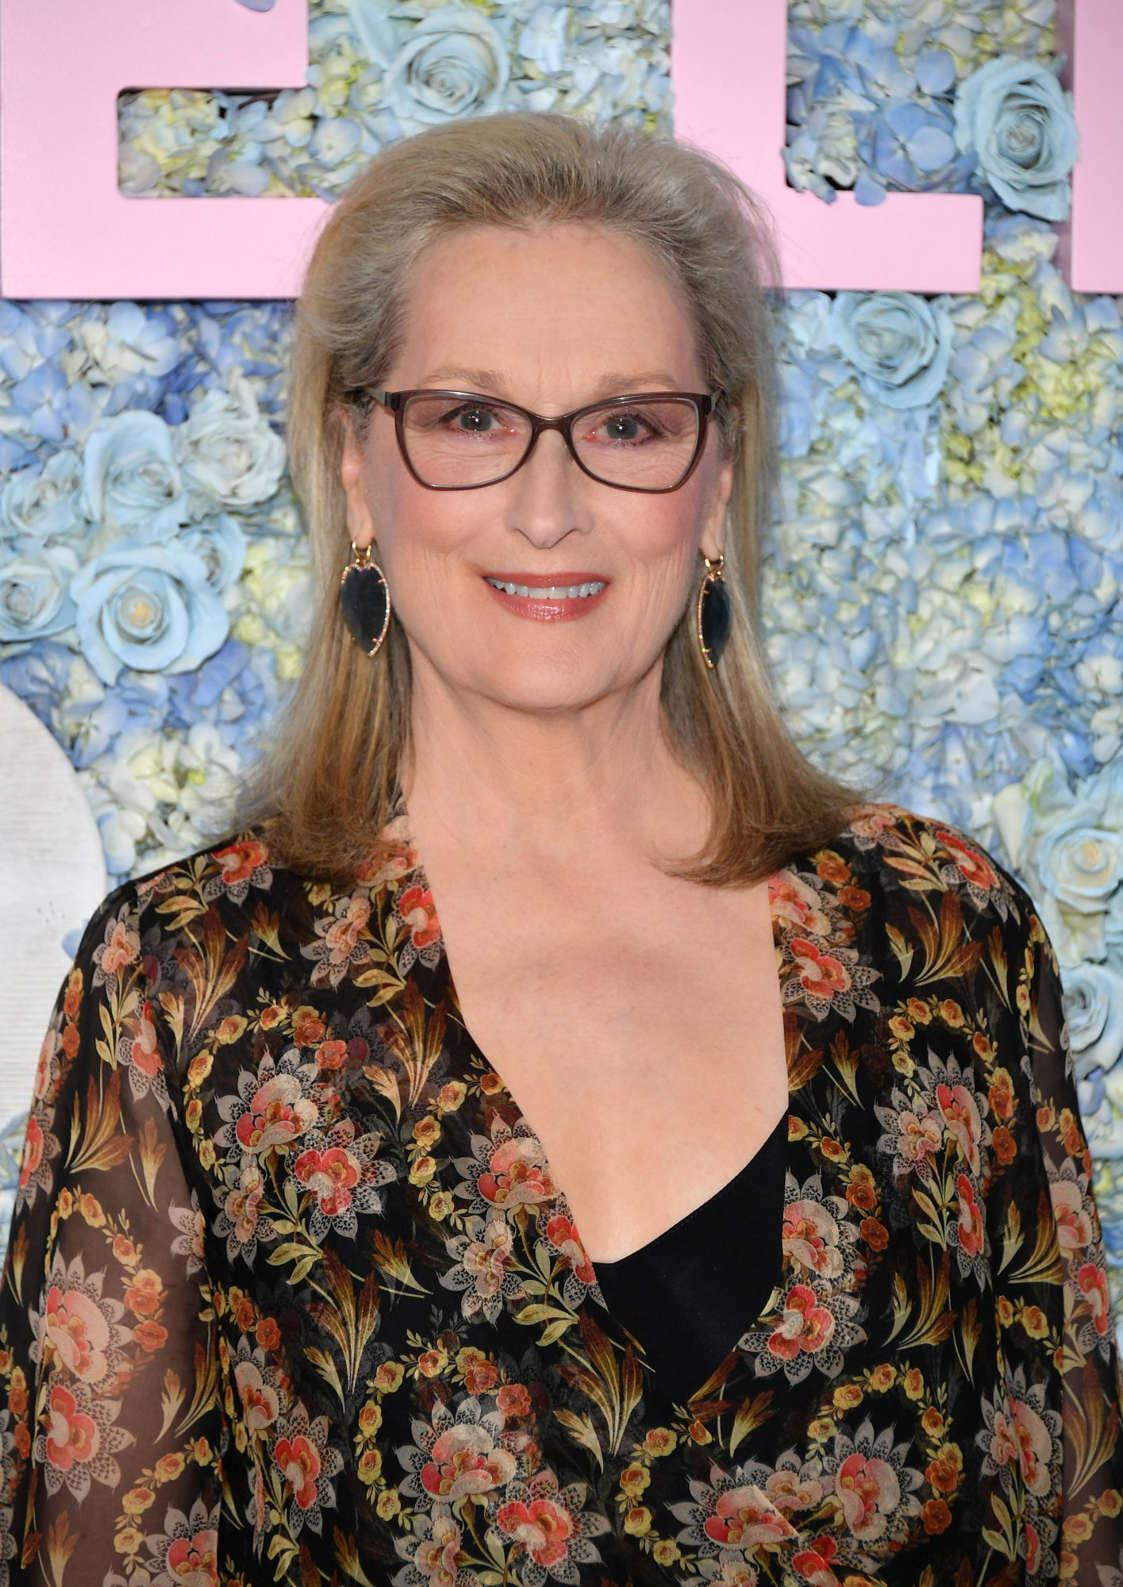 Meryl Streep in glasses looking at the camera